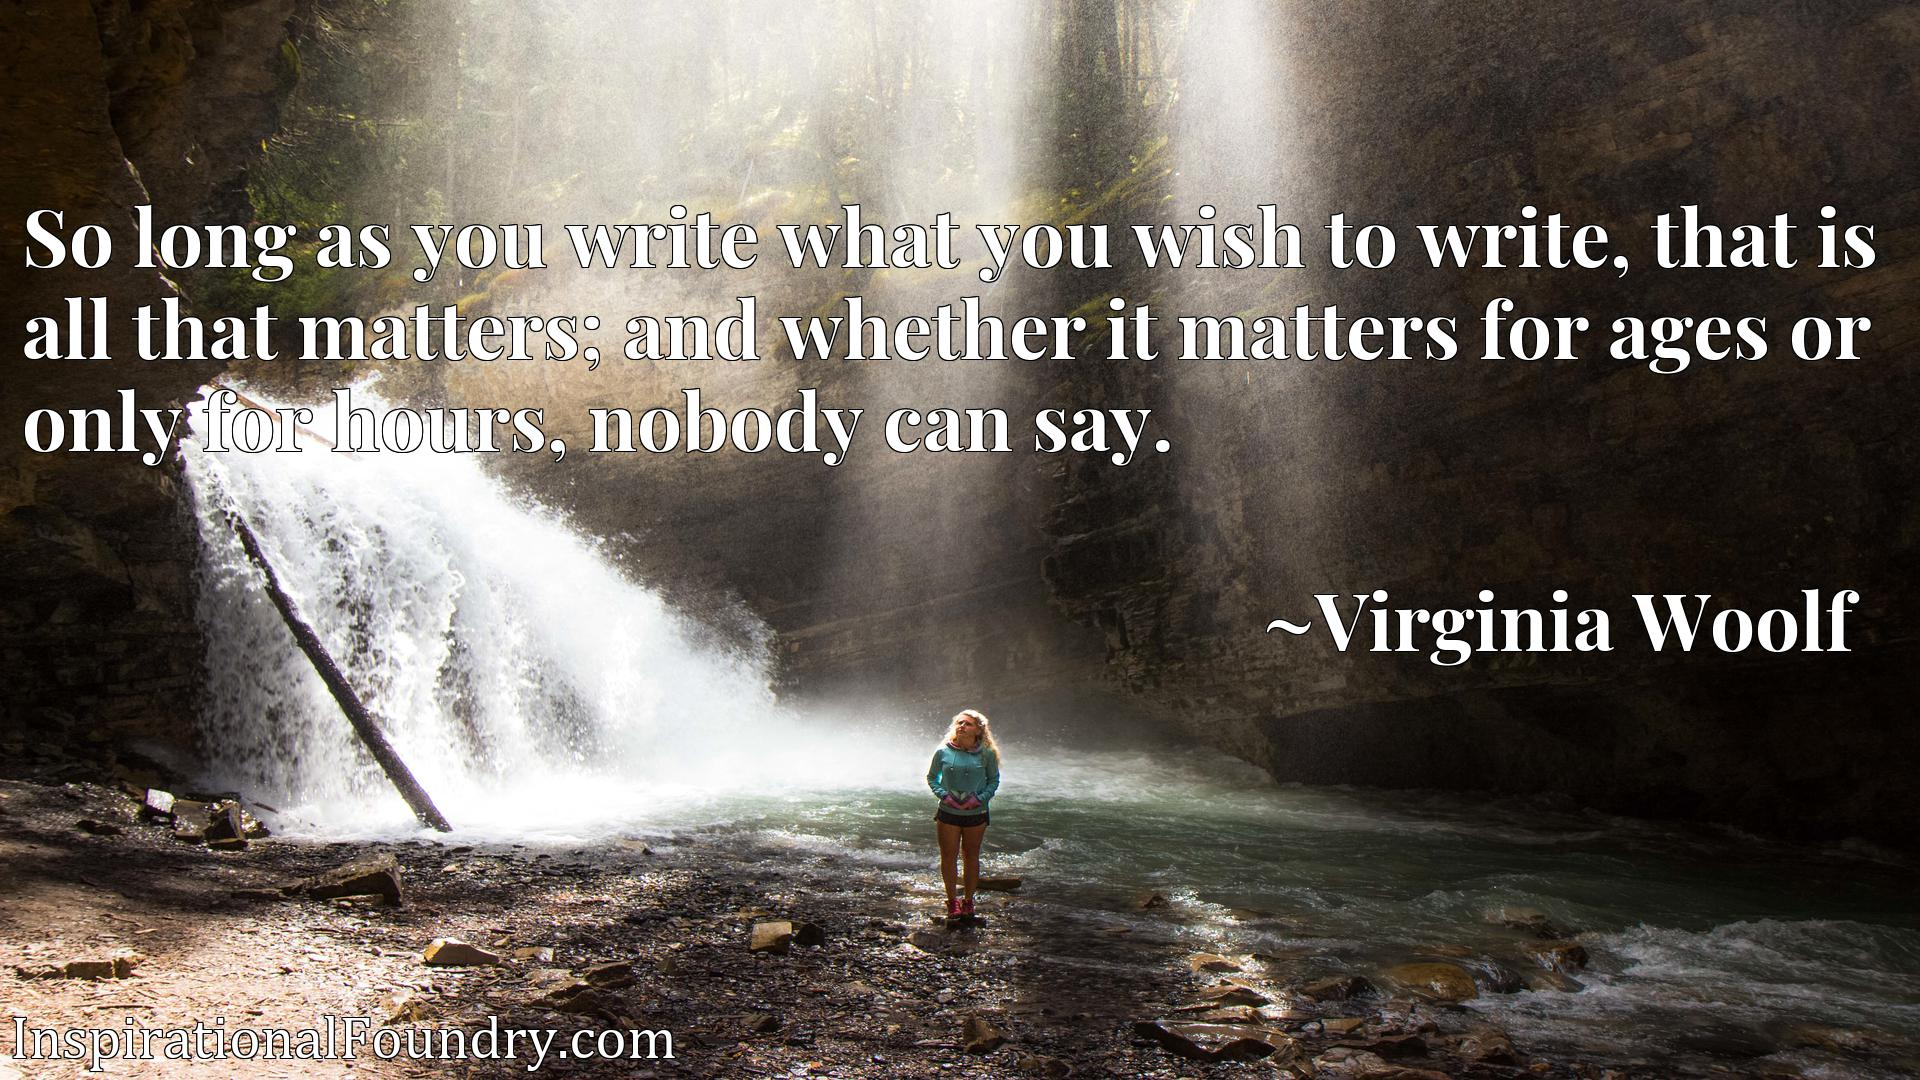 So long as you write what you wish to write, that is all that matters; and whether it matters for ages or only for hours, nobody can say.